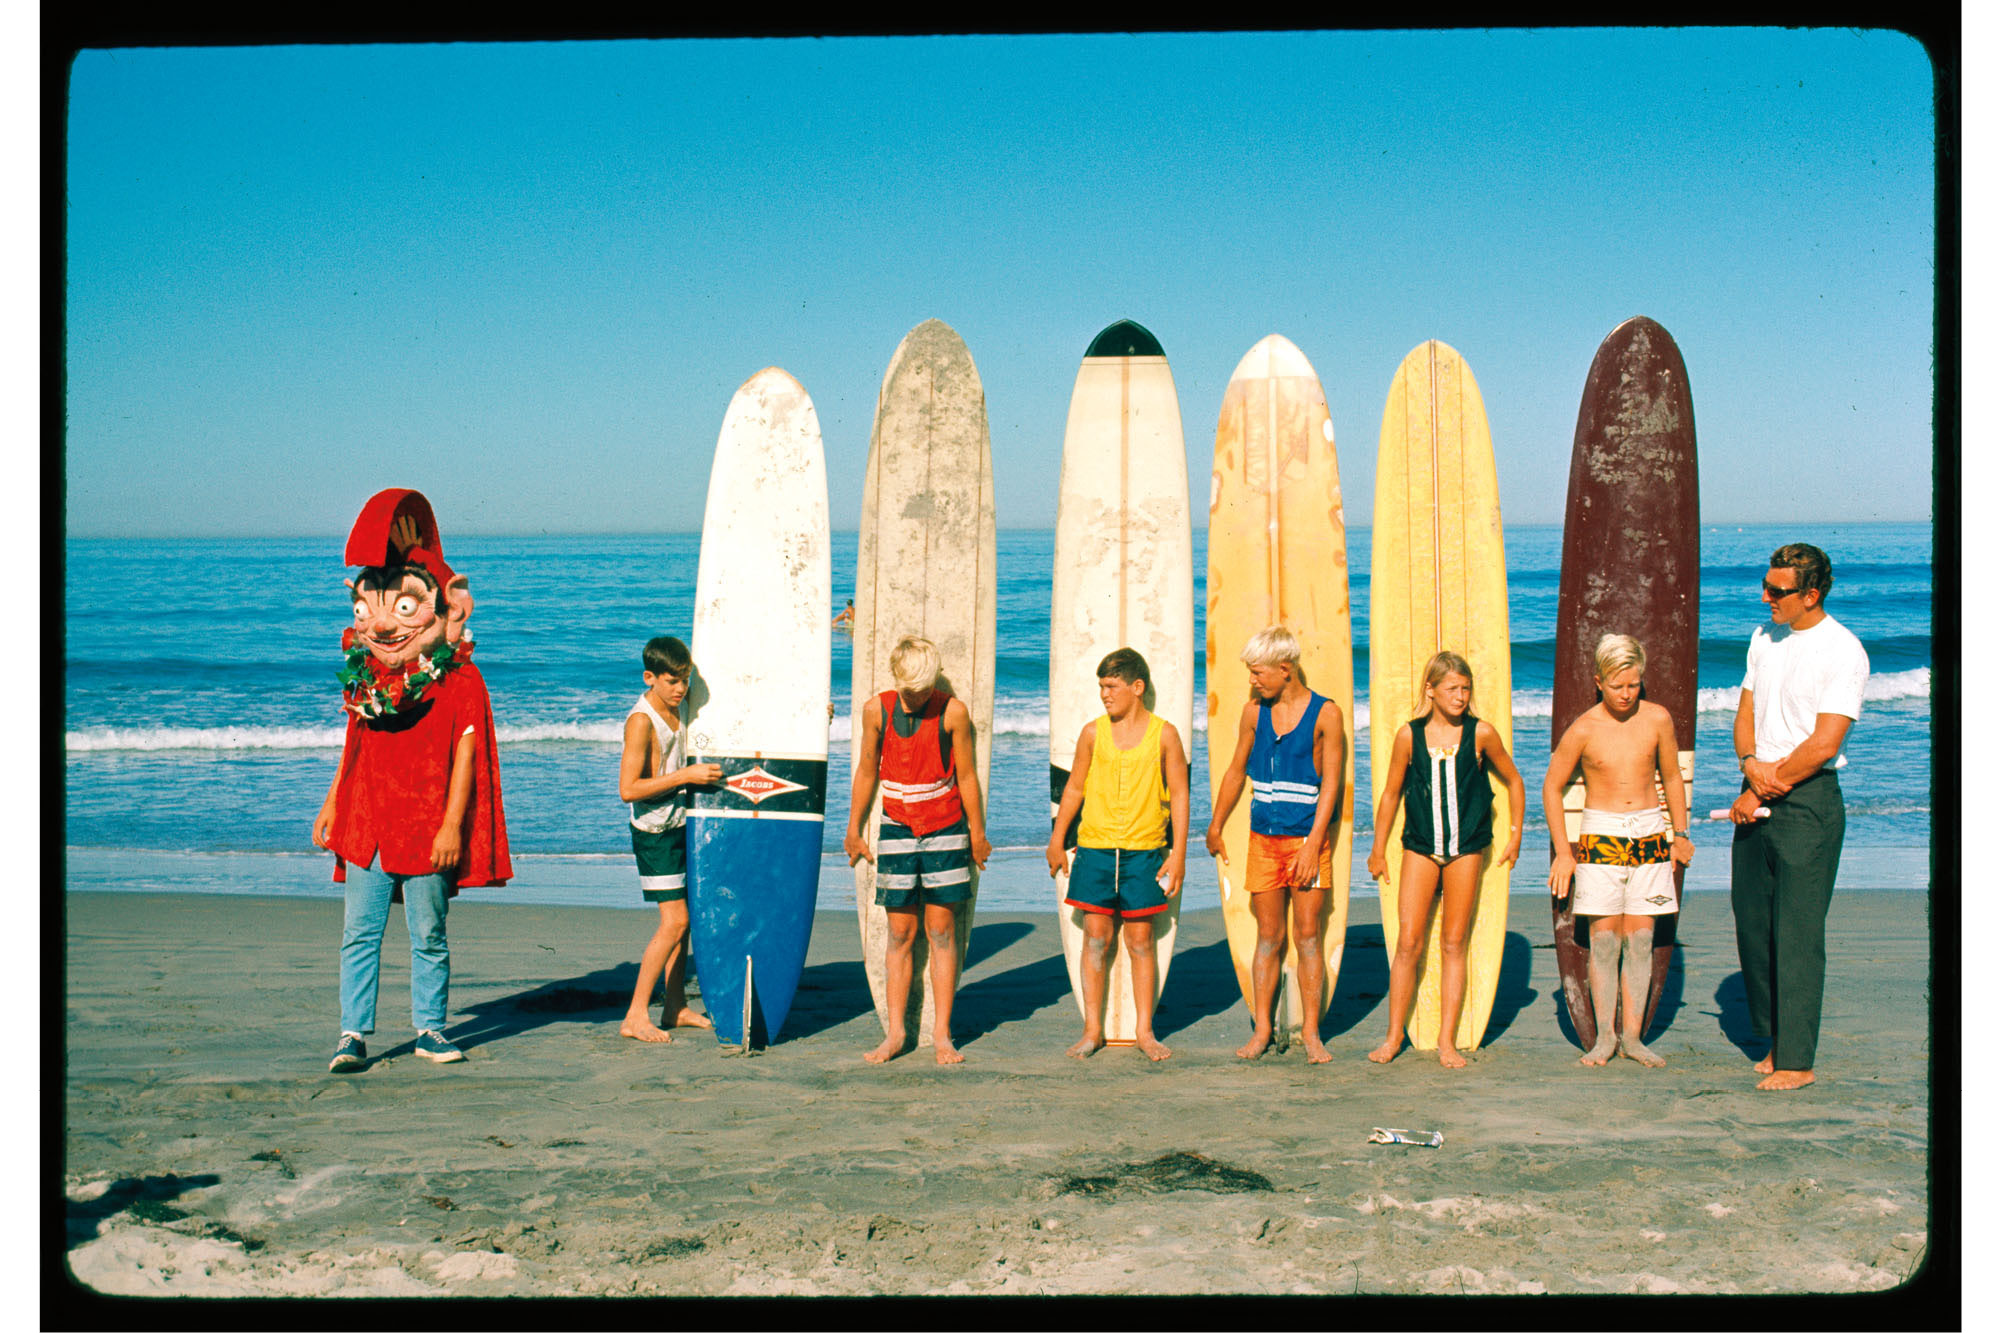 Was This The Best Era to be a California Surfer?